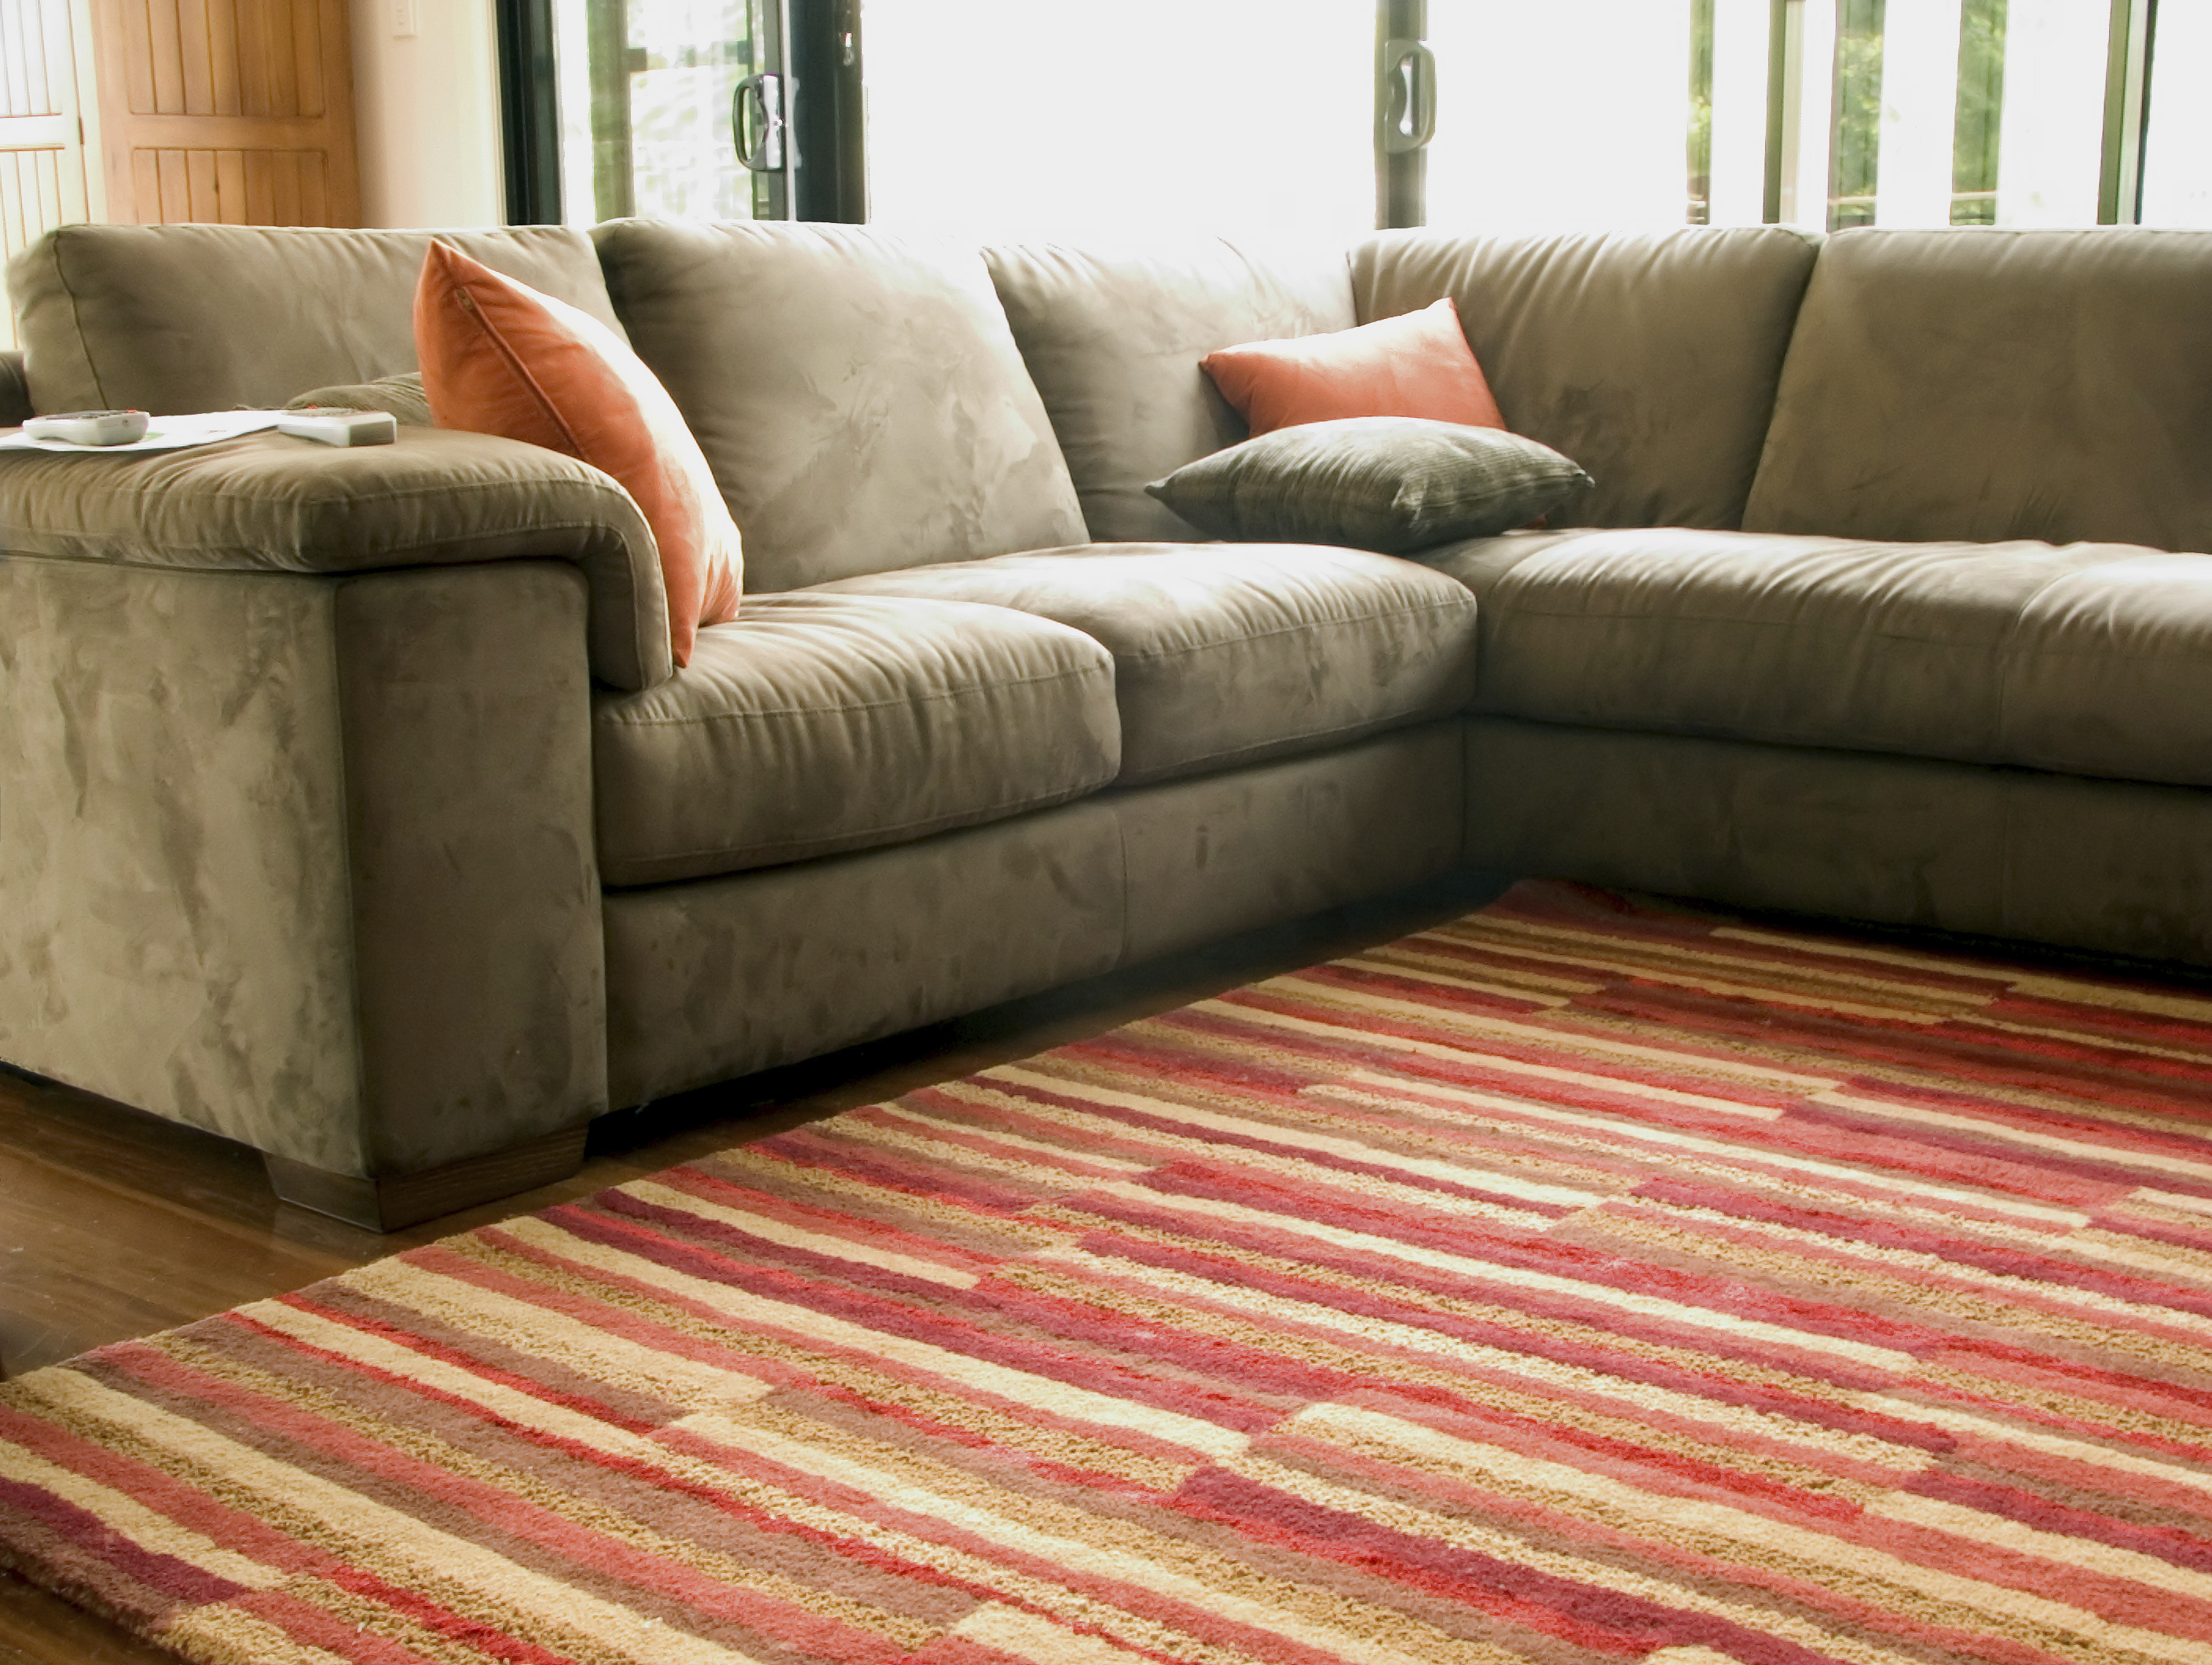 rug cleaners rochester